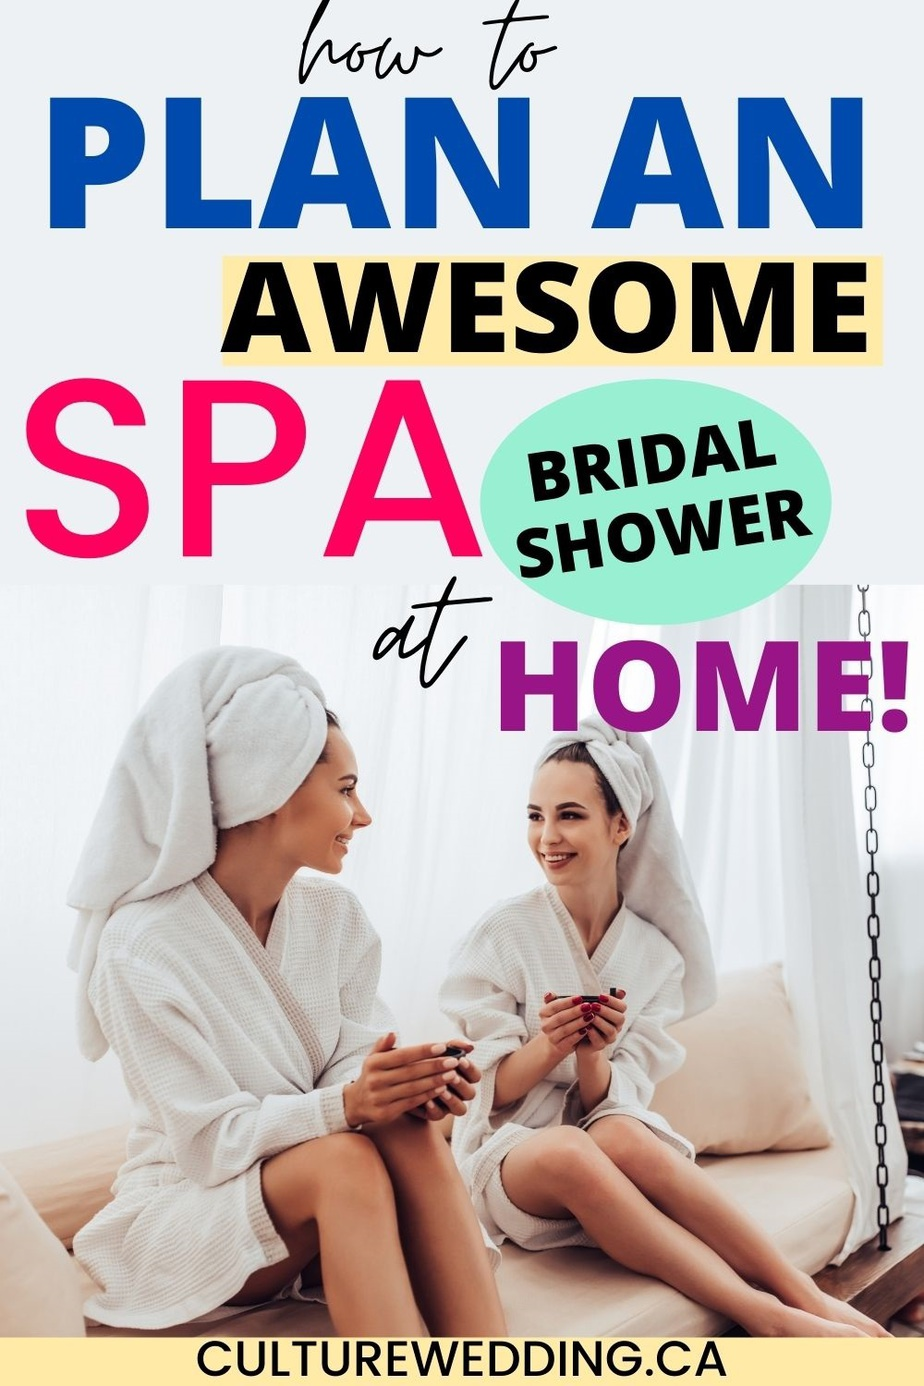 Plan the perfect themed spa bridal show. Here are the best ways to plan a spa bridal shower that won't cost your budget. Take your bridesmaids on a spa for a bridal shower themed event #weddingplanning #bridalshowerideas #weddingtheme #bridalshower A few bridal shower ideas to inspire you.